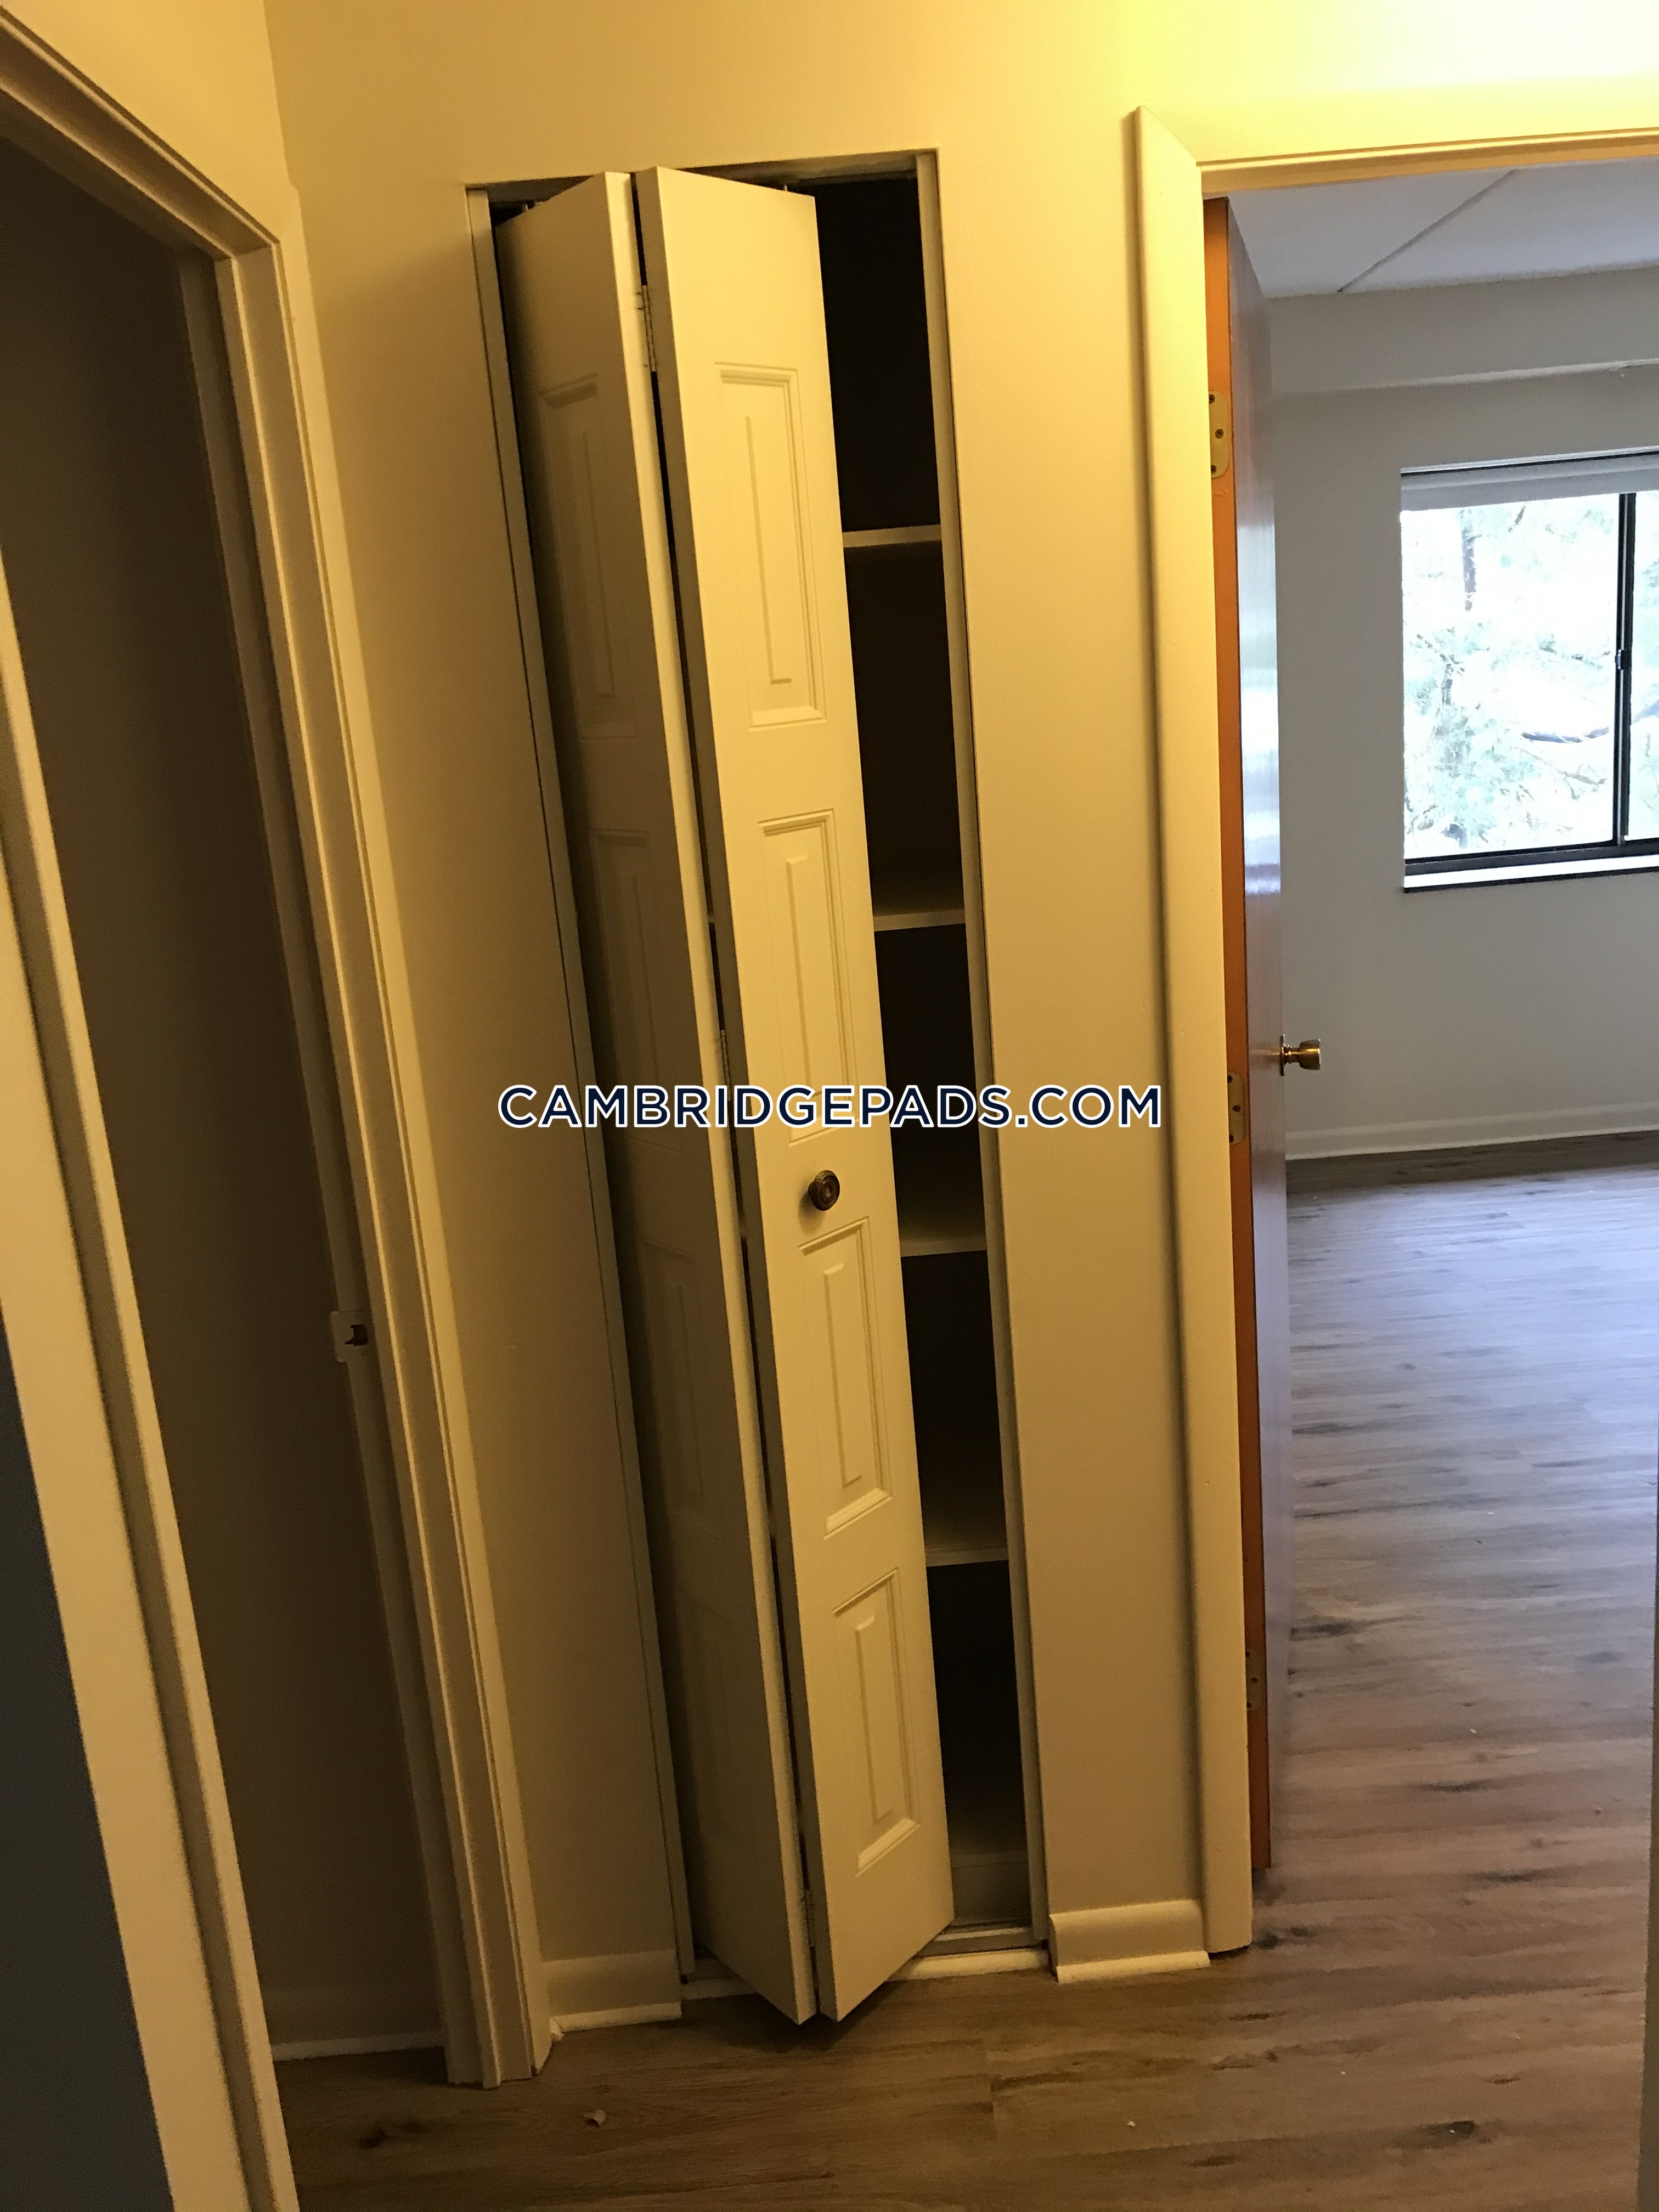 Cambridge - $2,495